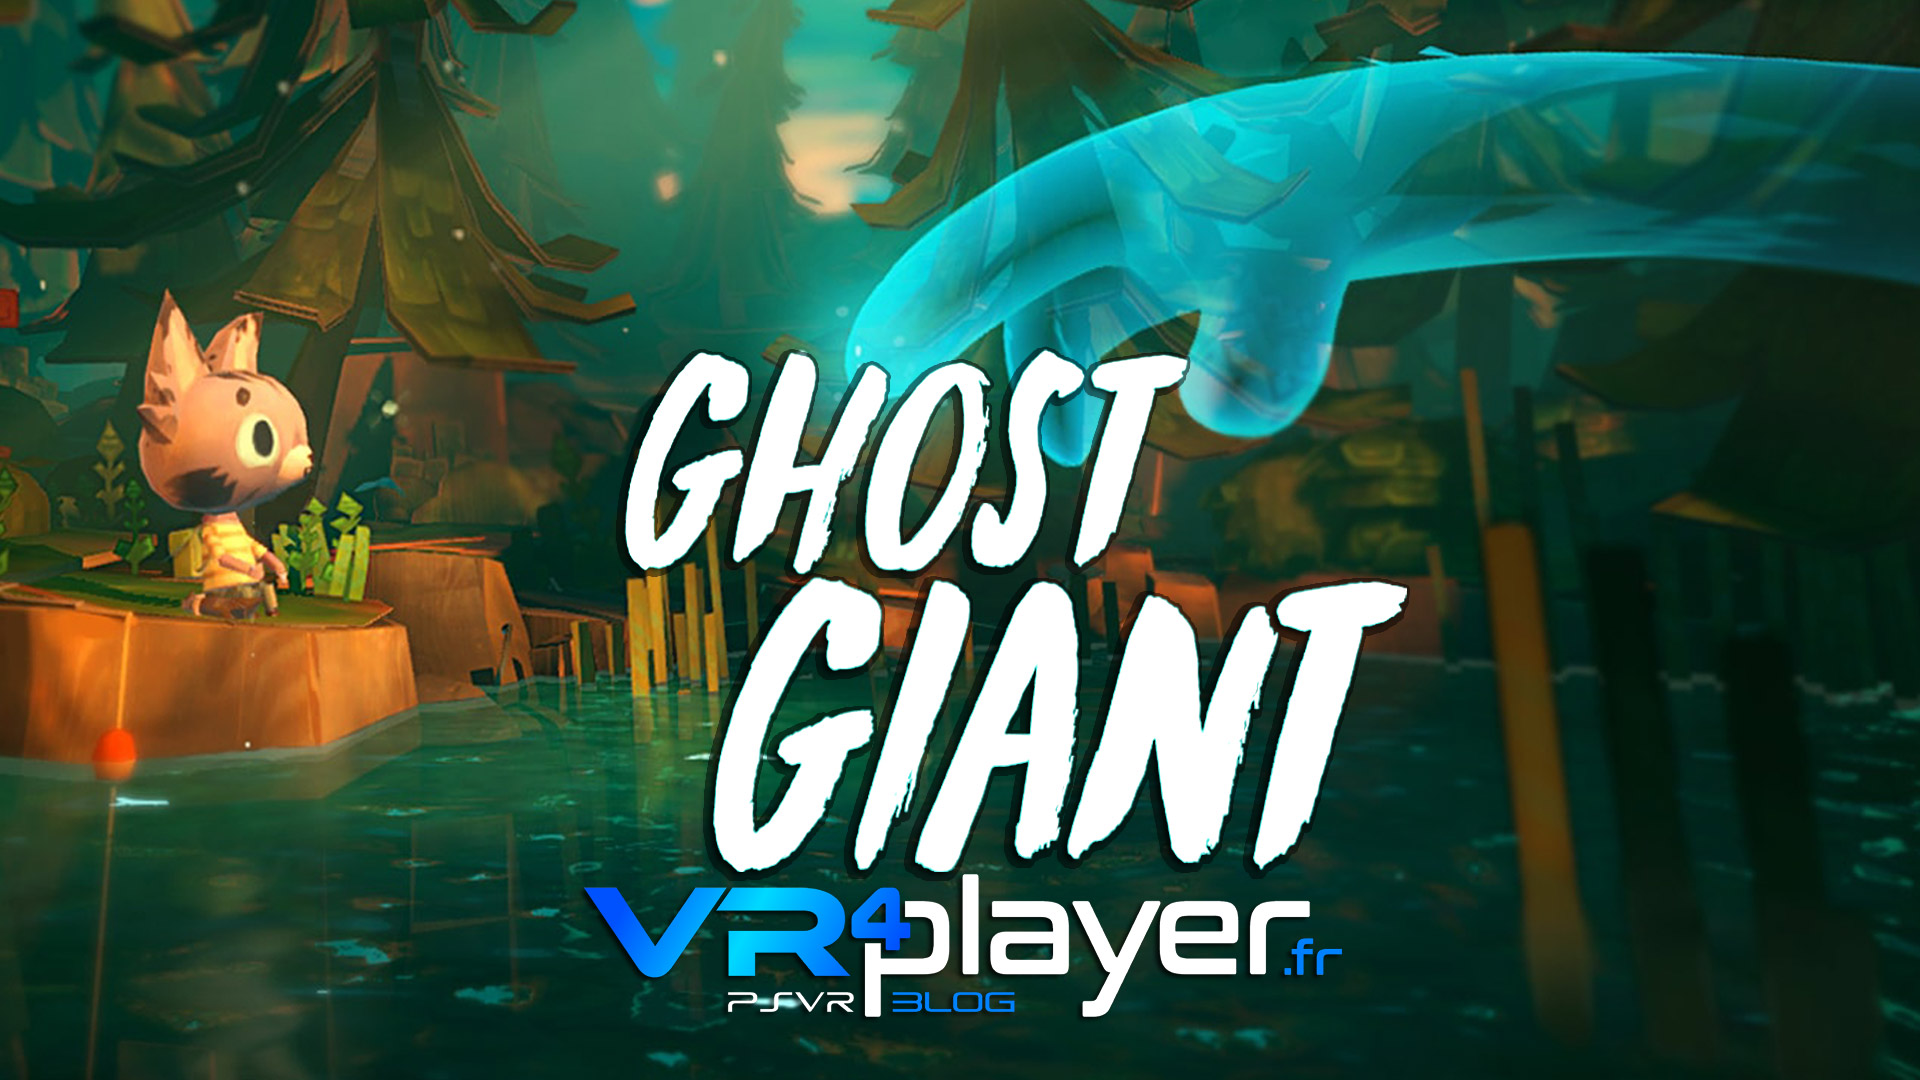 Ghost Giant PSVR vr4player.fr